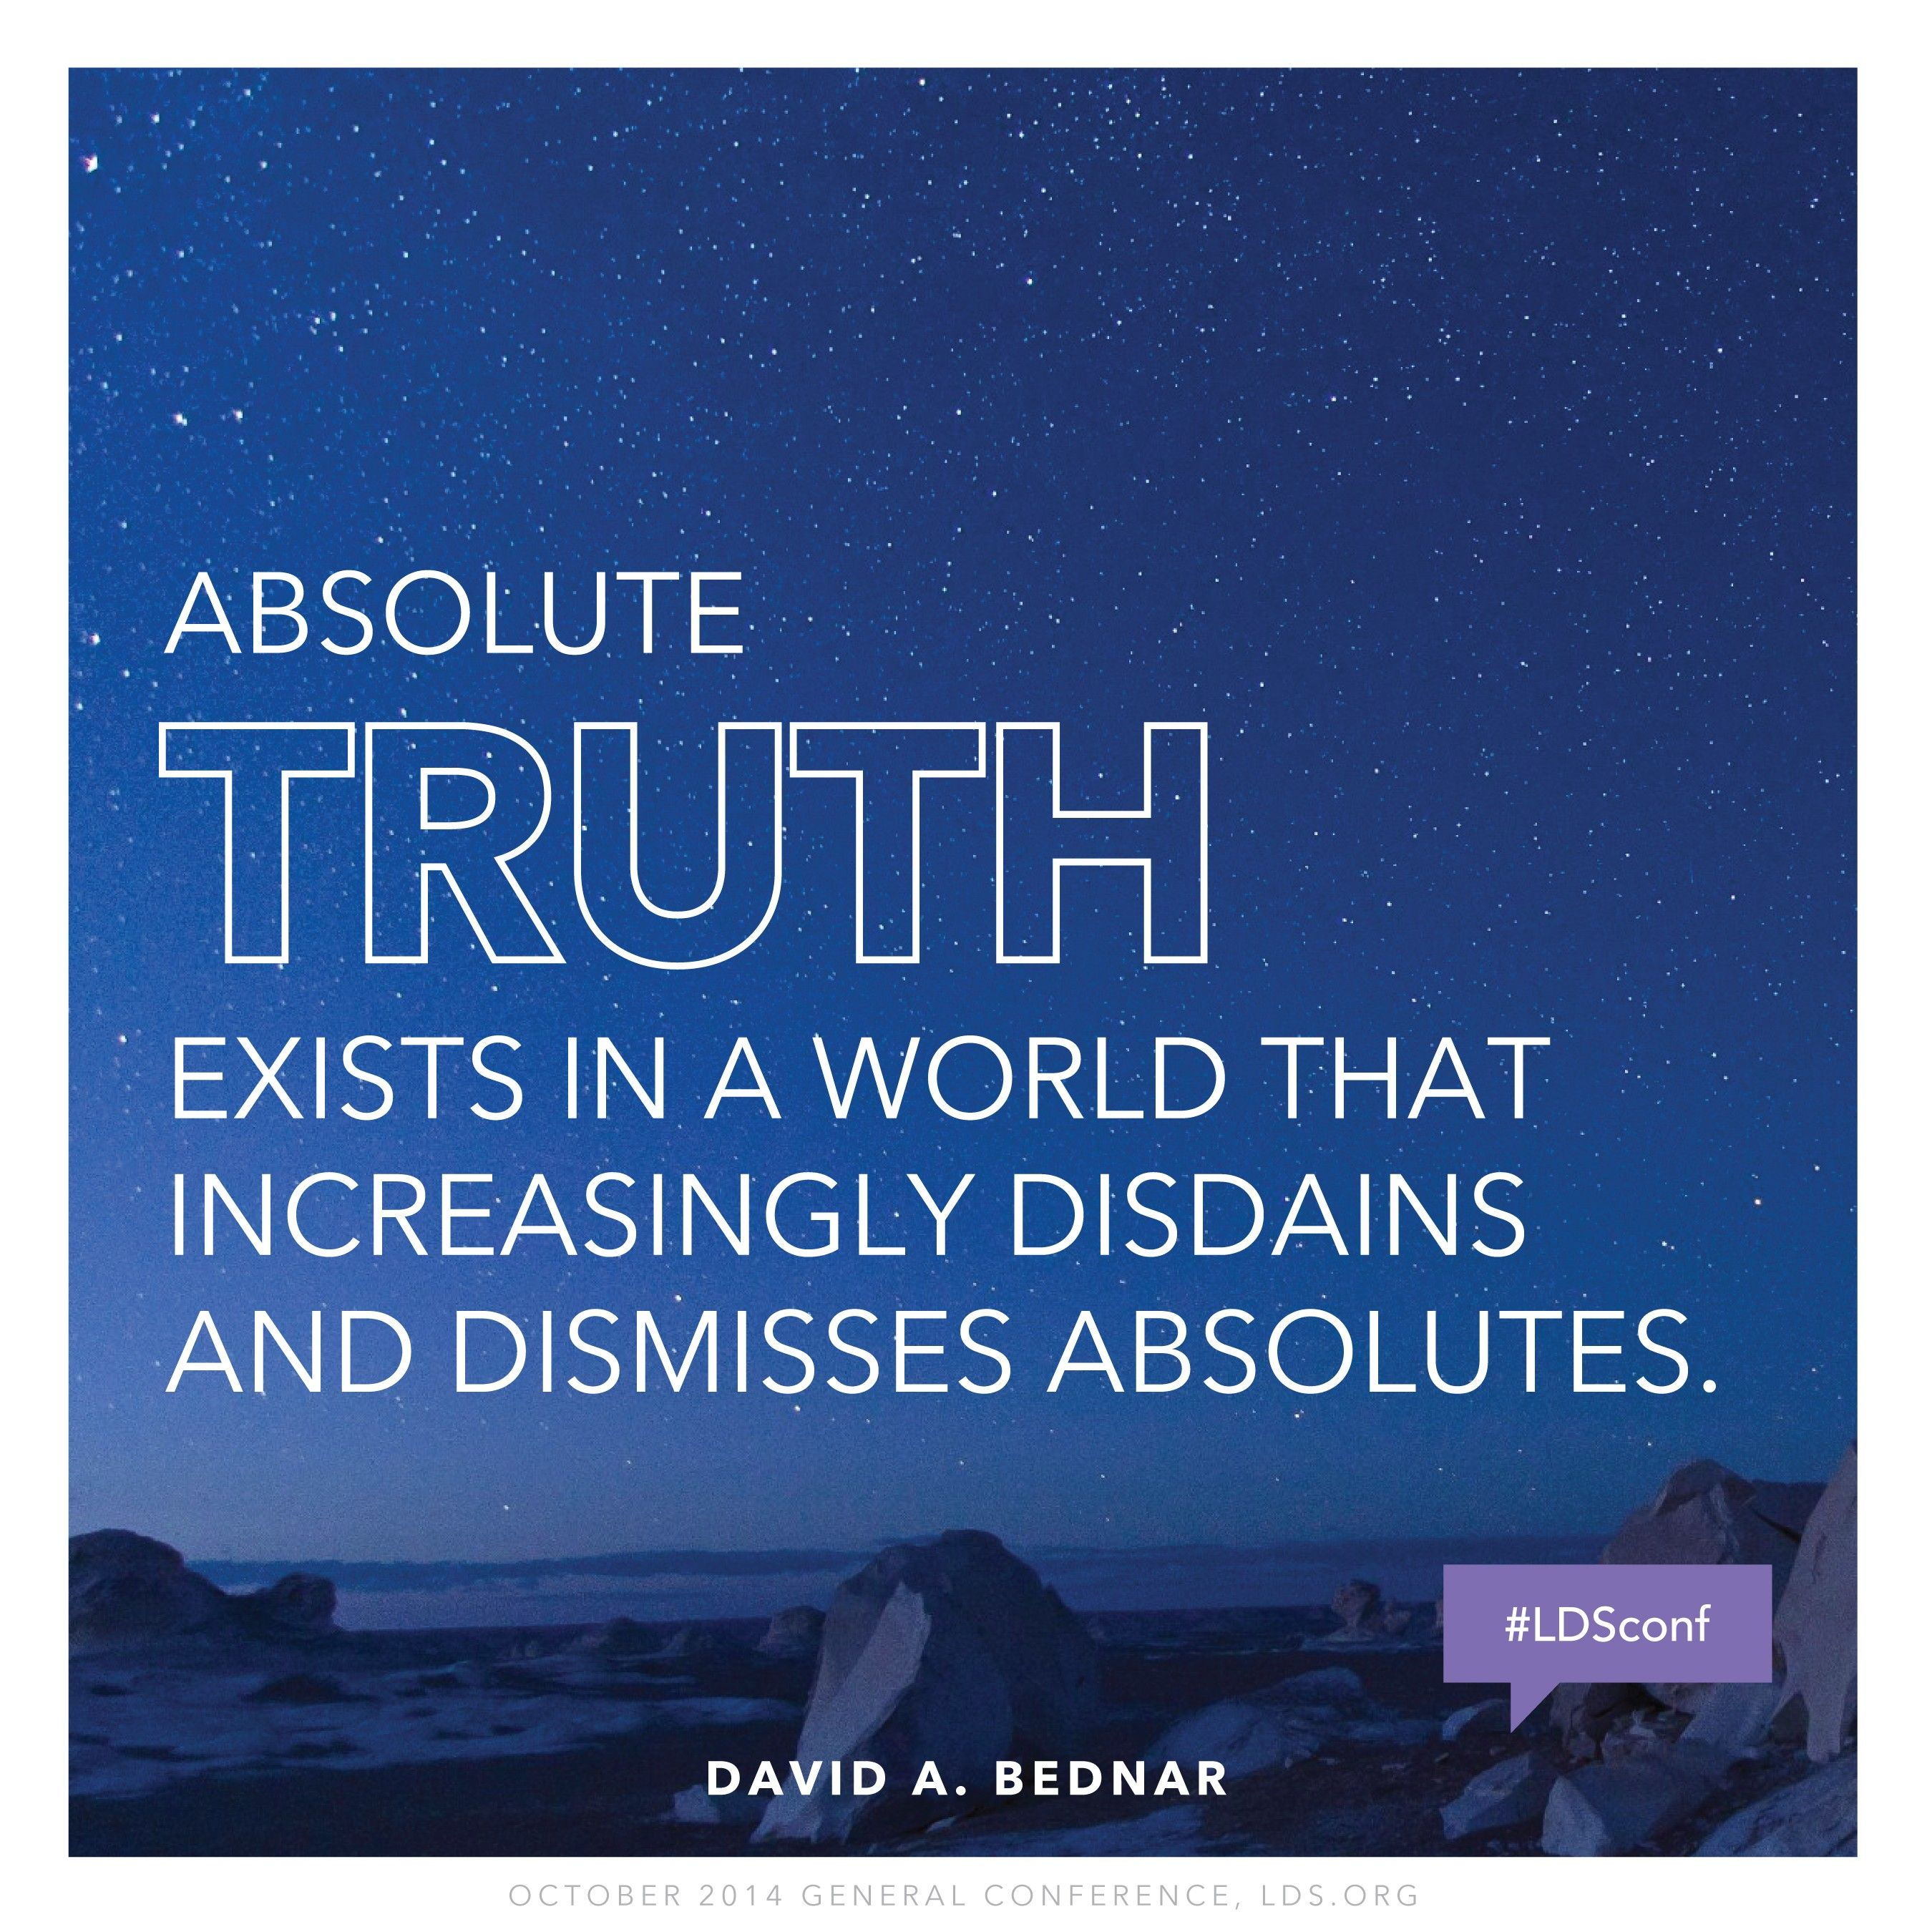 """""""Absolute truth exists in a world that increasingly disdains and dismisses absolutes.""""—Elder David A. Bednar, """"Come and See"""""""